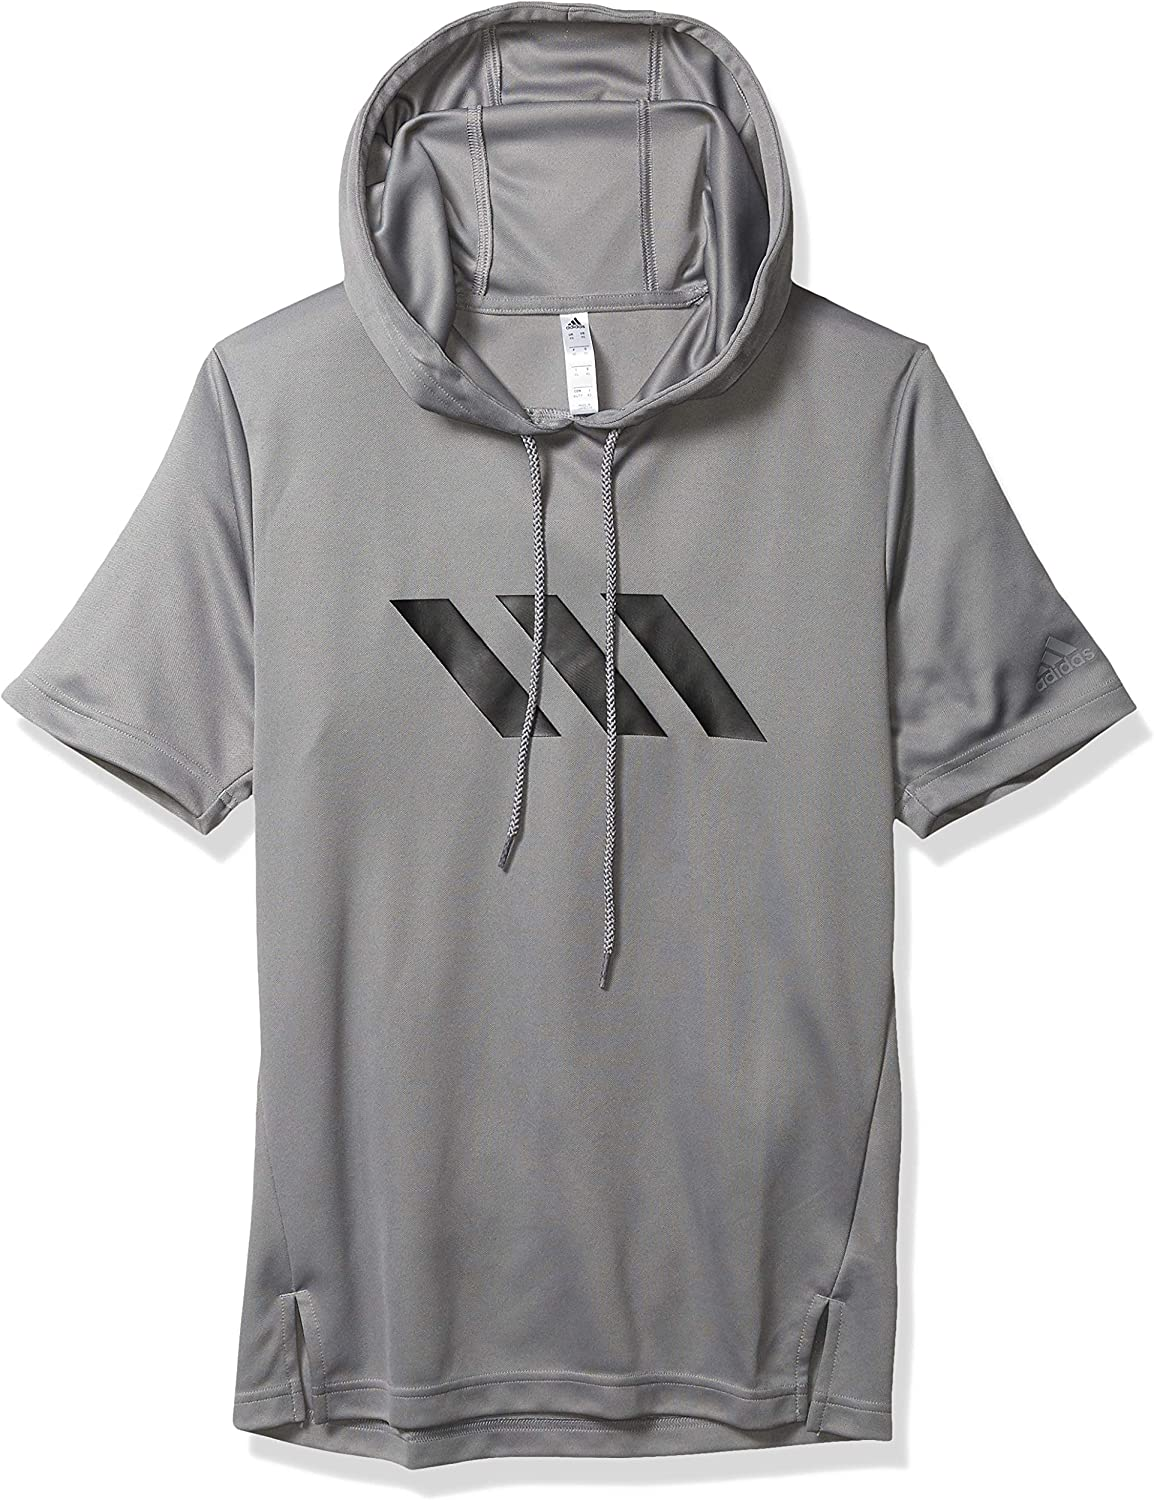 adidas mens Great interest Sport Outlet SALE Hoodie